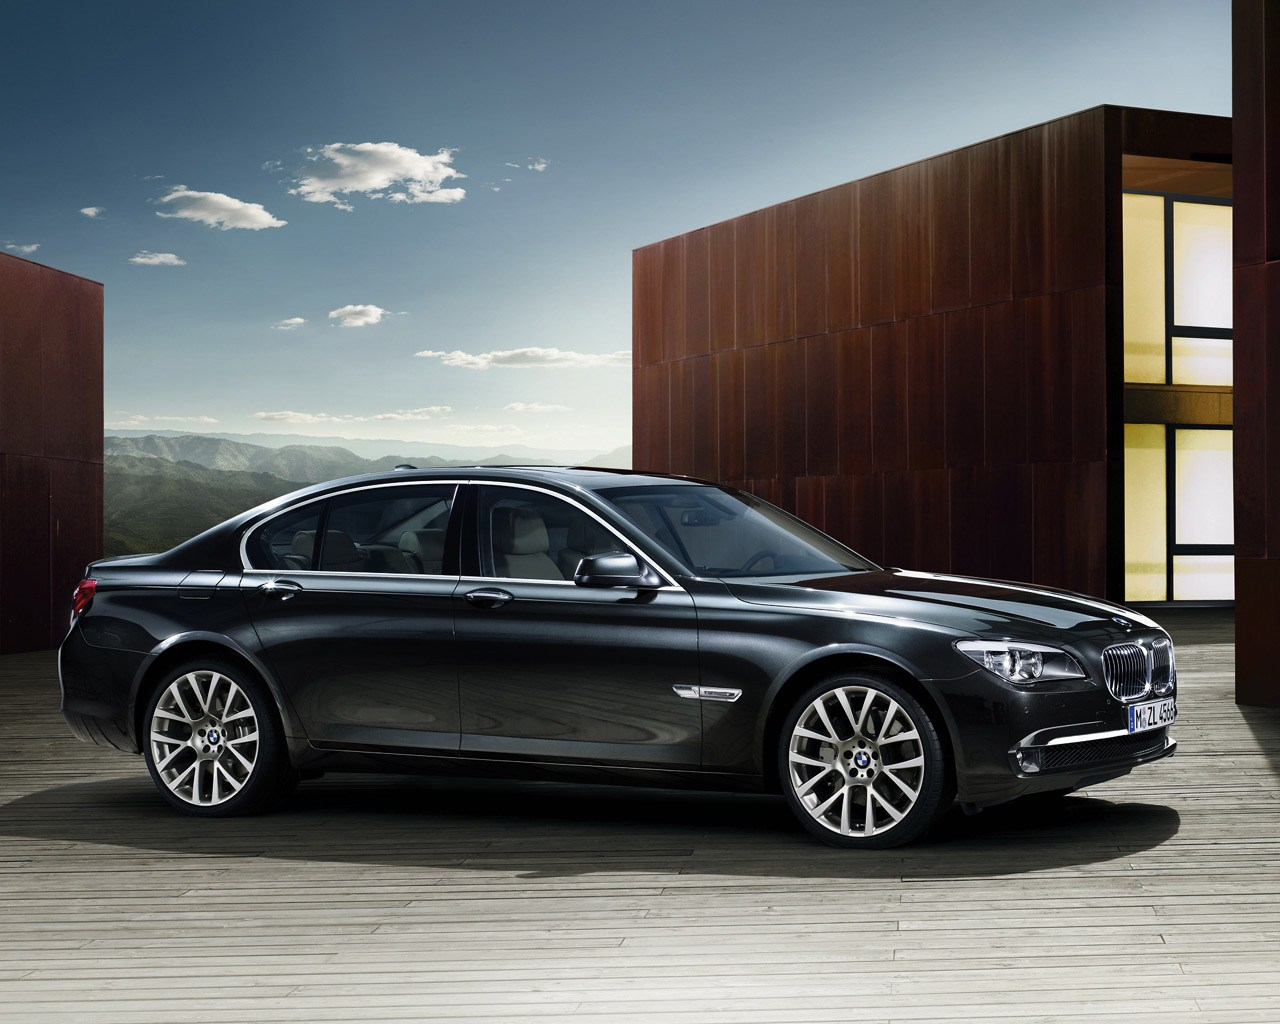 2016 bmw 7 series wallpapers car wallpaper collections gallery view. Black Bedroom Furniture Sets. Home Design Ideas